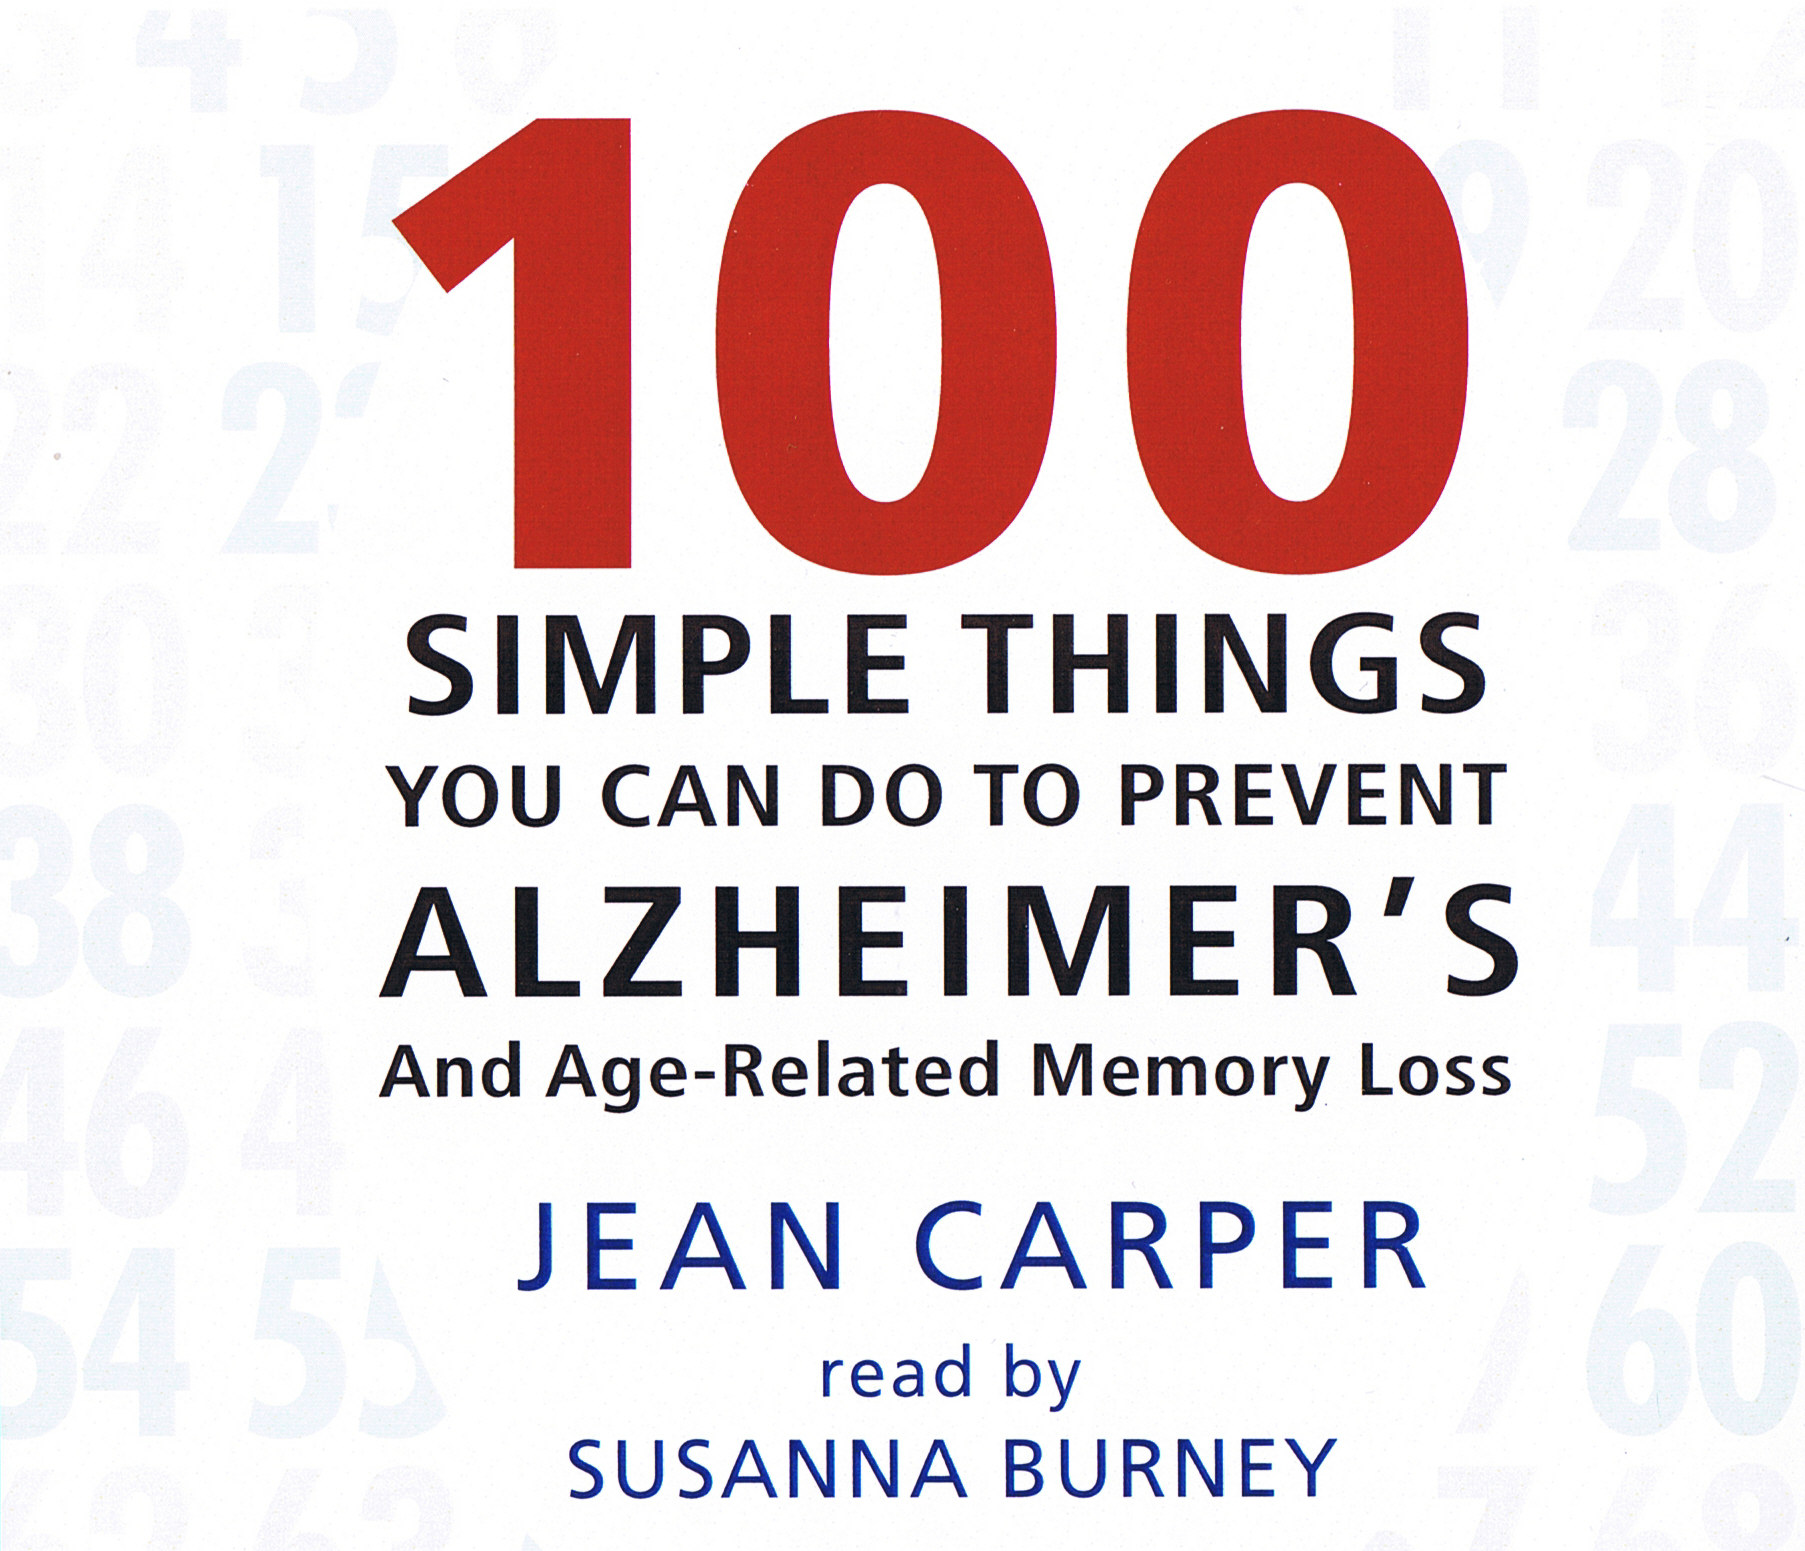 100 Simple Things You Can Do To Prevent Alzheimer's [3CD]